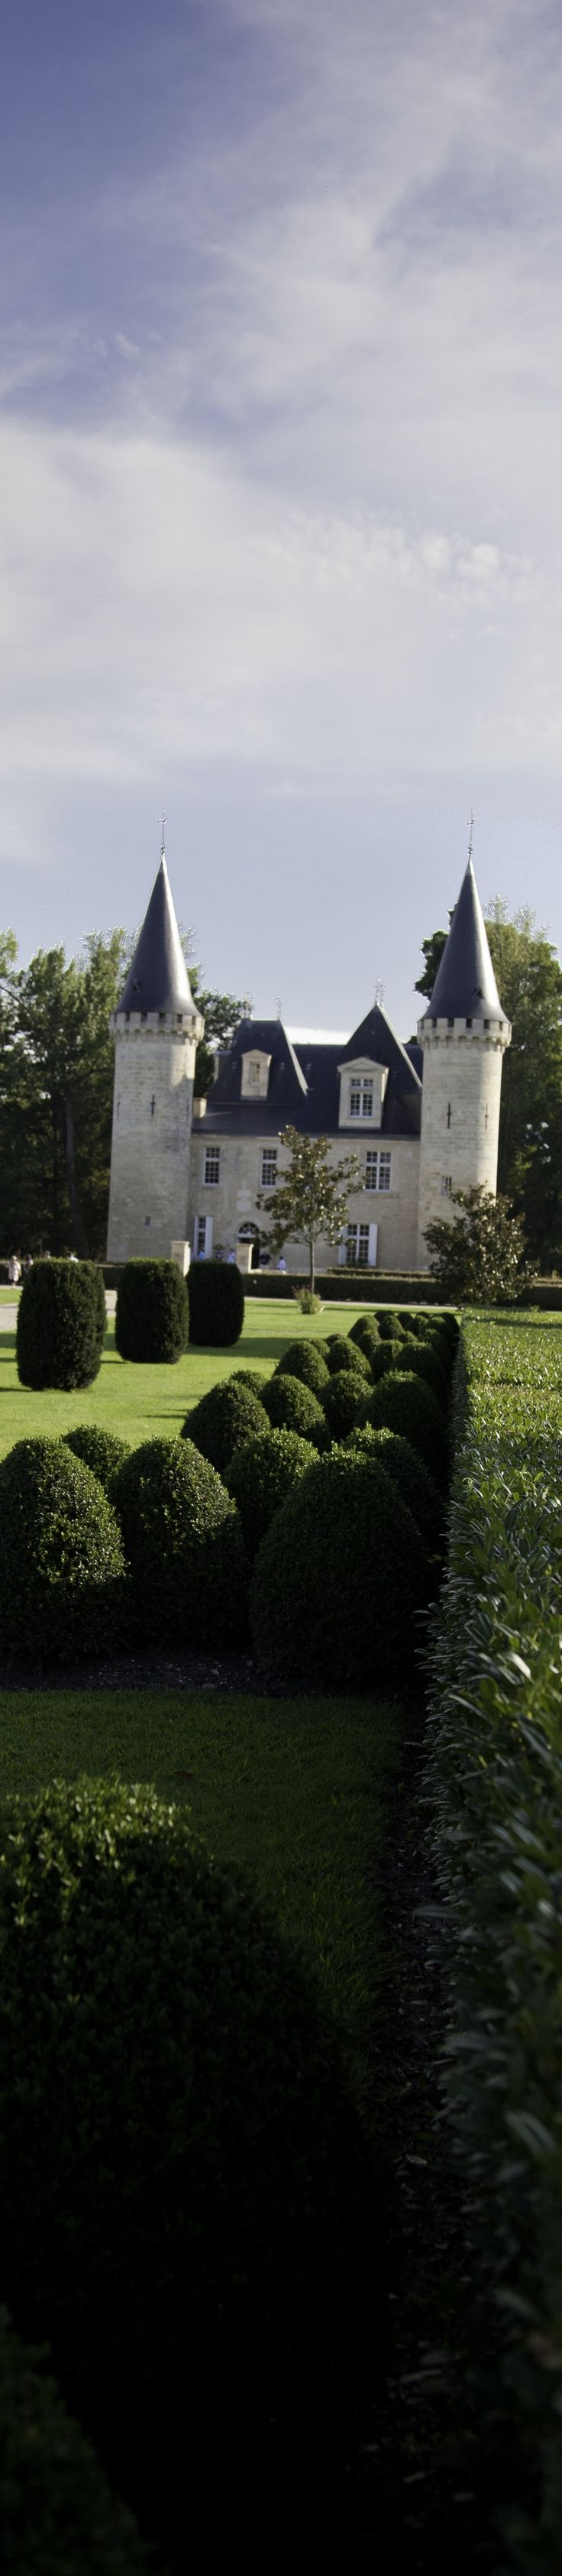 A fairytale castle in Bordeaux, France   http://www.pinterest.com/adisavoiaditrev/boards/